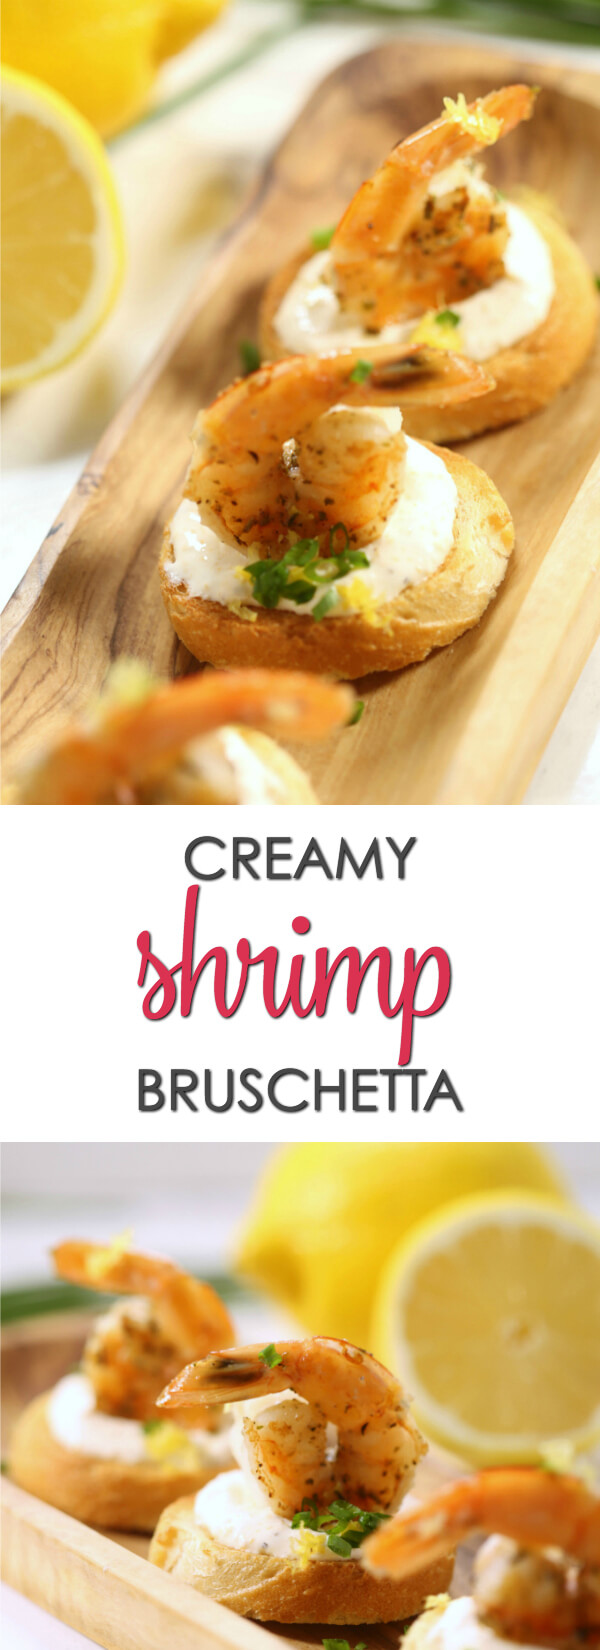 This Creamy Shrimp Bruschetta is one of my favorite easy shrimp appetizers.  It's easy to make but looks so elegant.  Plus, you can serve it hot or cold.